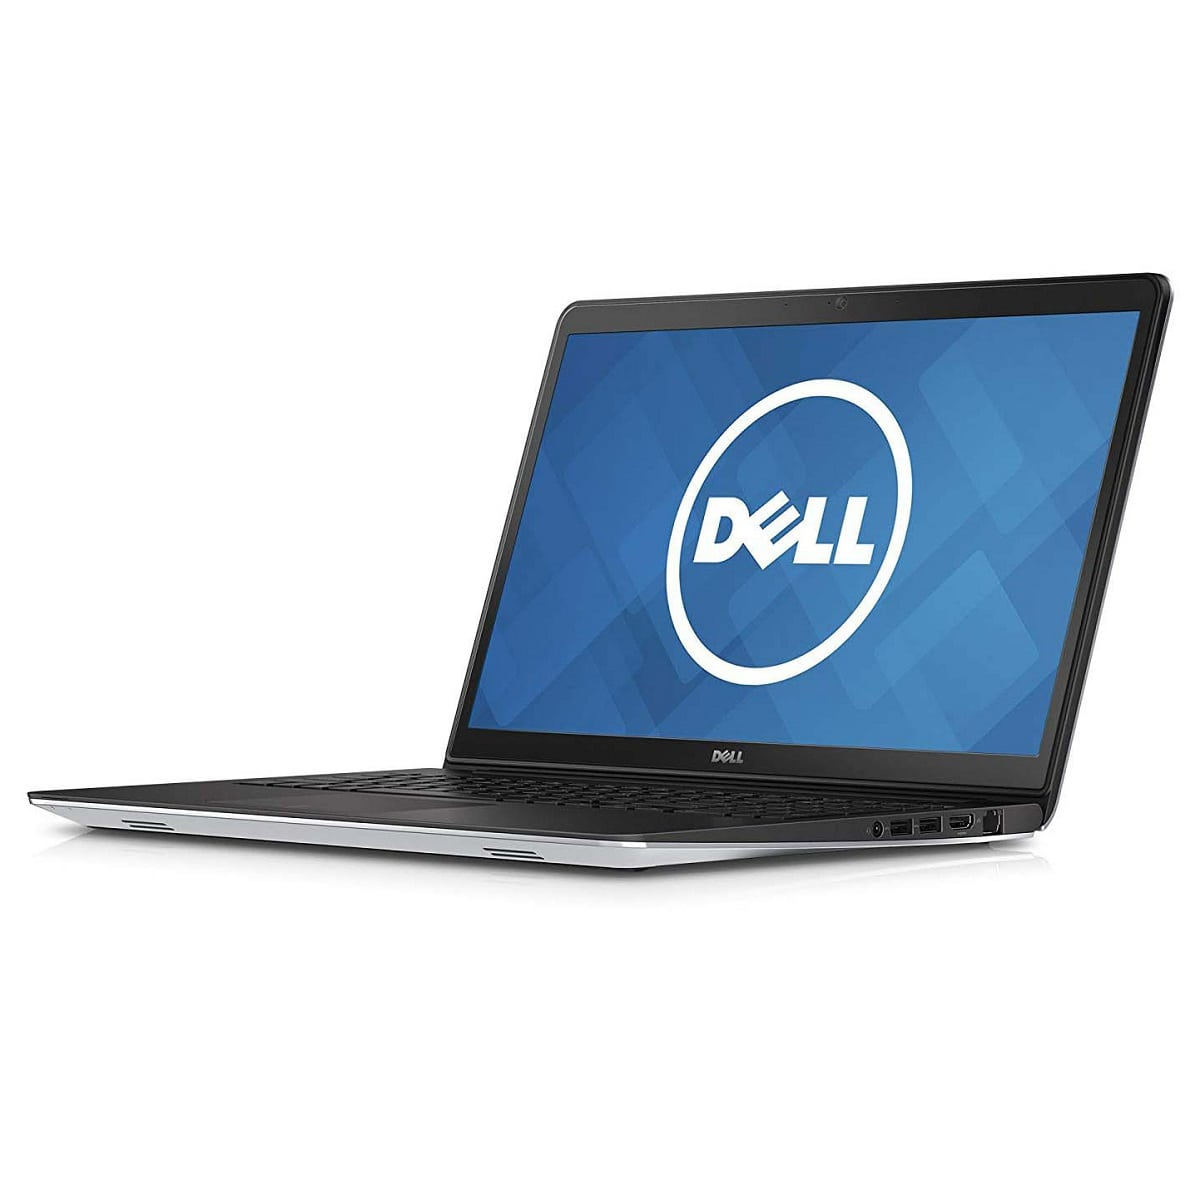 Dell Inspiron 5557 Core i5 6200U, Ram 8GB, SSD 240GB, 15.6 Inch, NVIDIA GeForce 930M